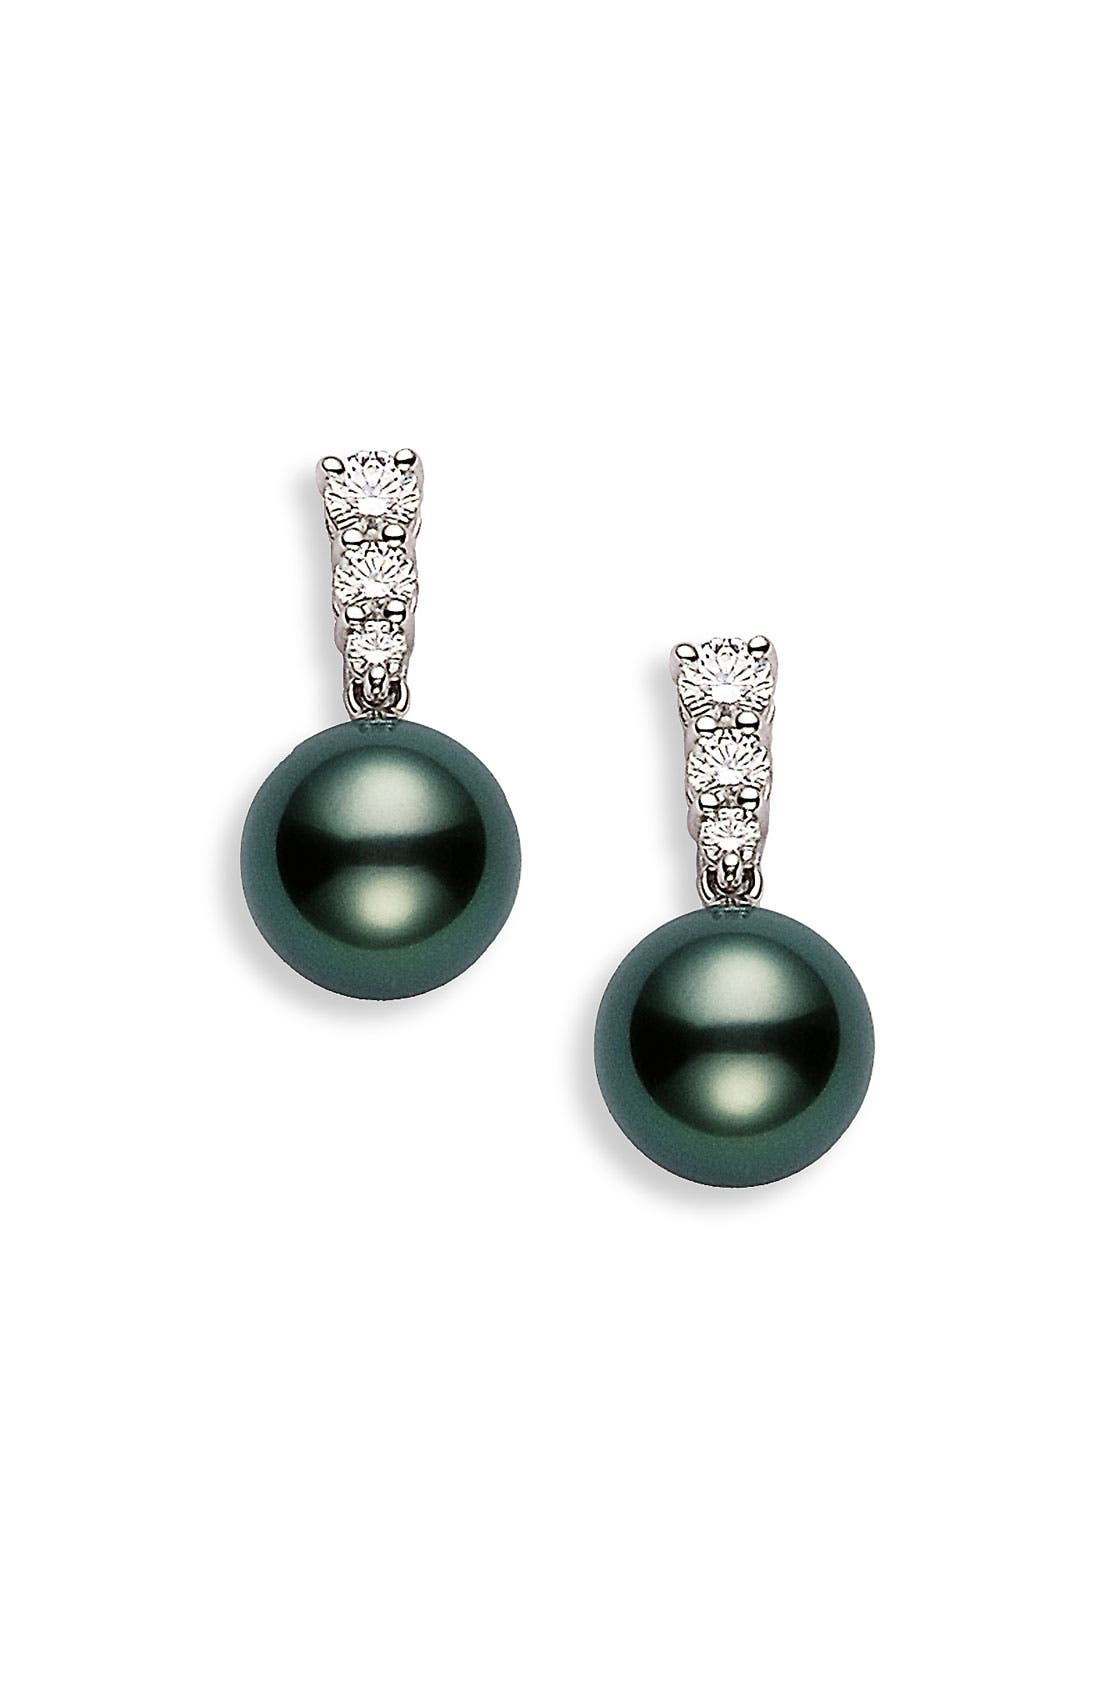 Main Image - Mikimoto 'Morning Dew' Black South Sea Cultured Pearl & Diamond Earrings